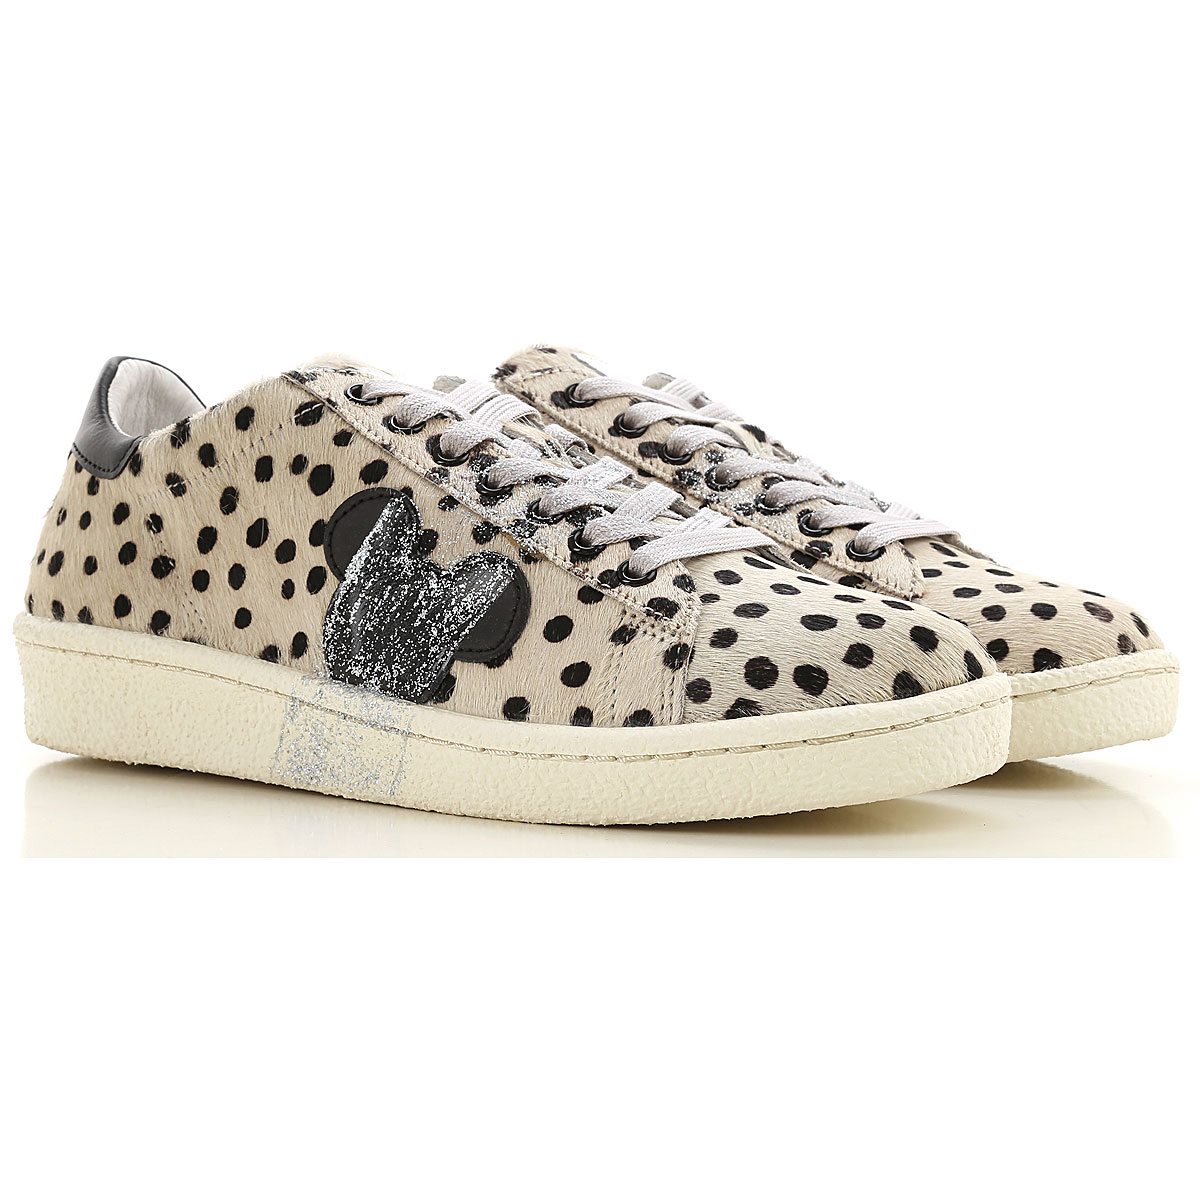 Moa Master of Arts Sneakers for Women On Sale, Beige, Fur, 2019, 10 7 8 9